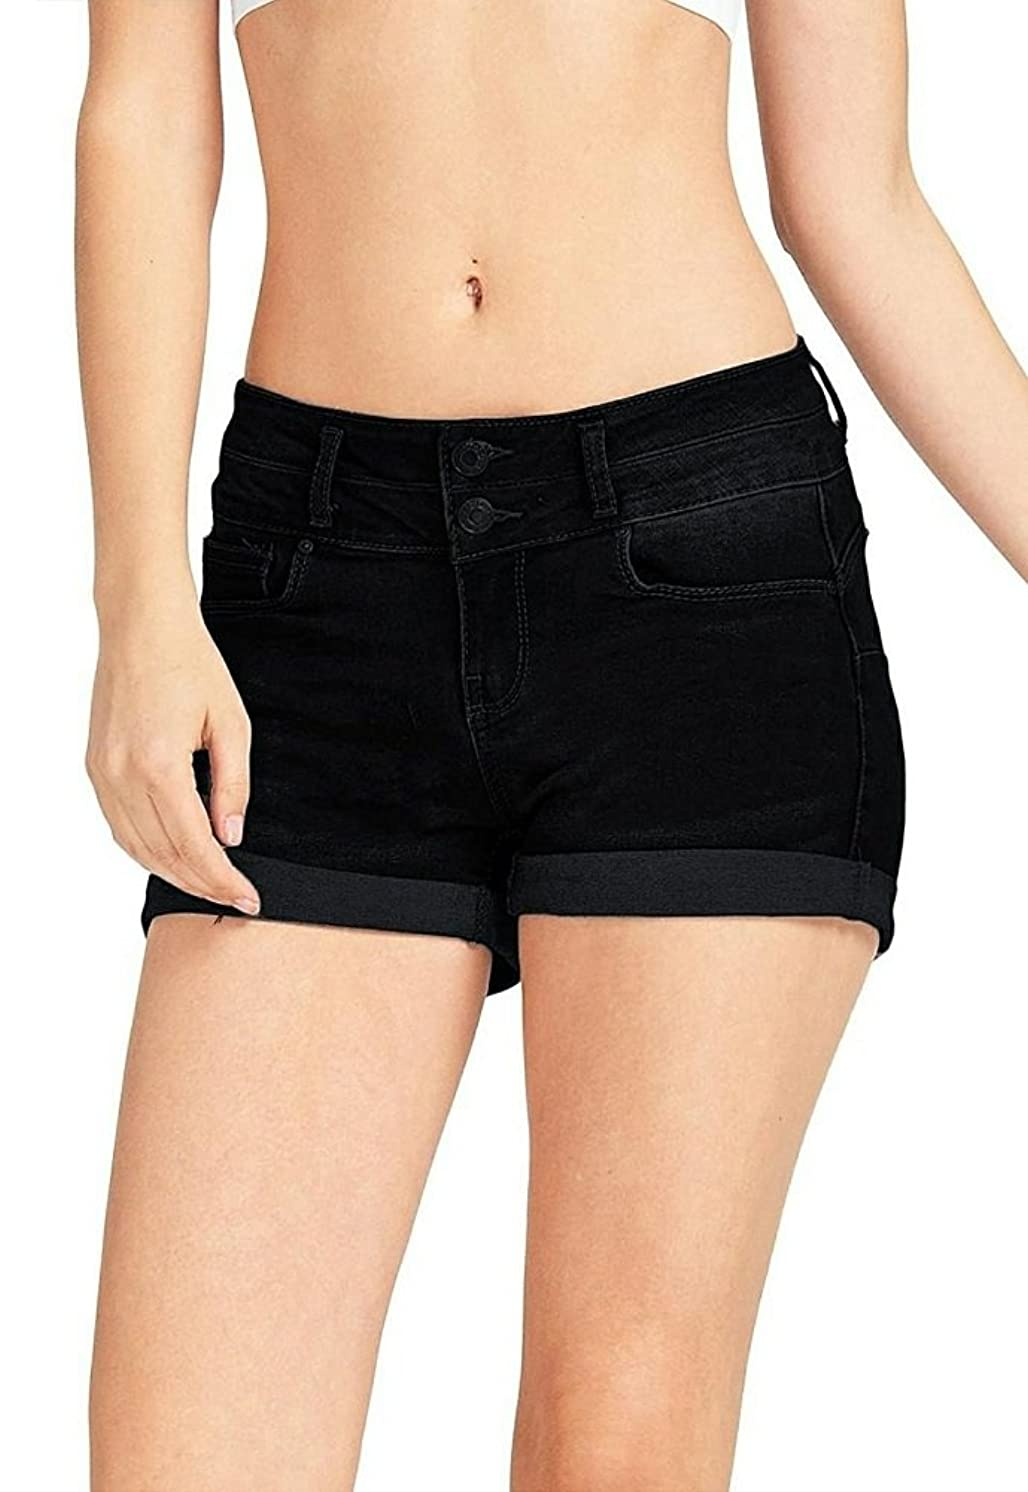 WAX JEAN 2 Buttons Push Up Shorts with A Silver Brushed Nickel Finish